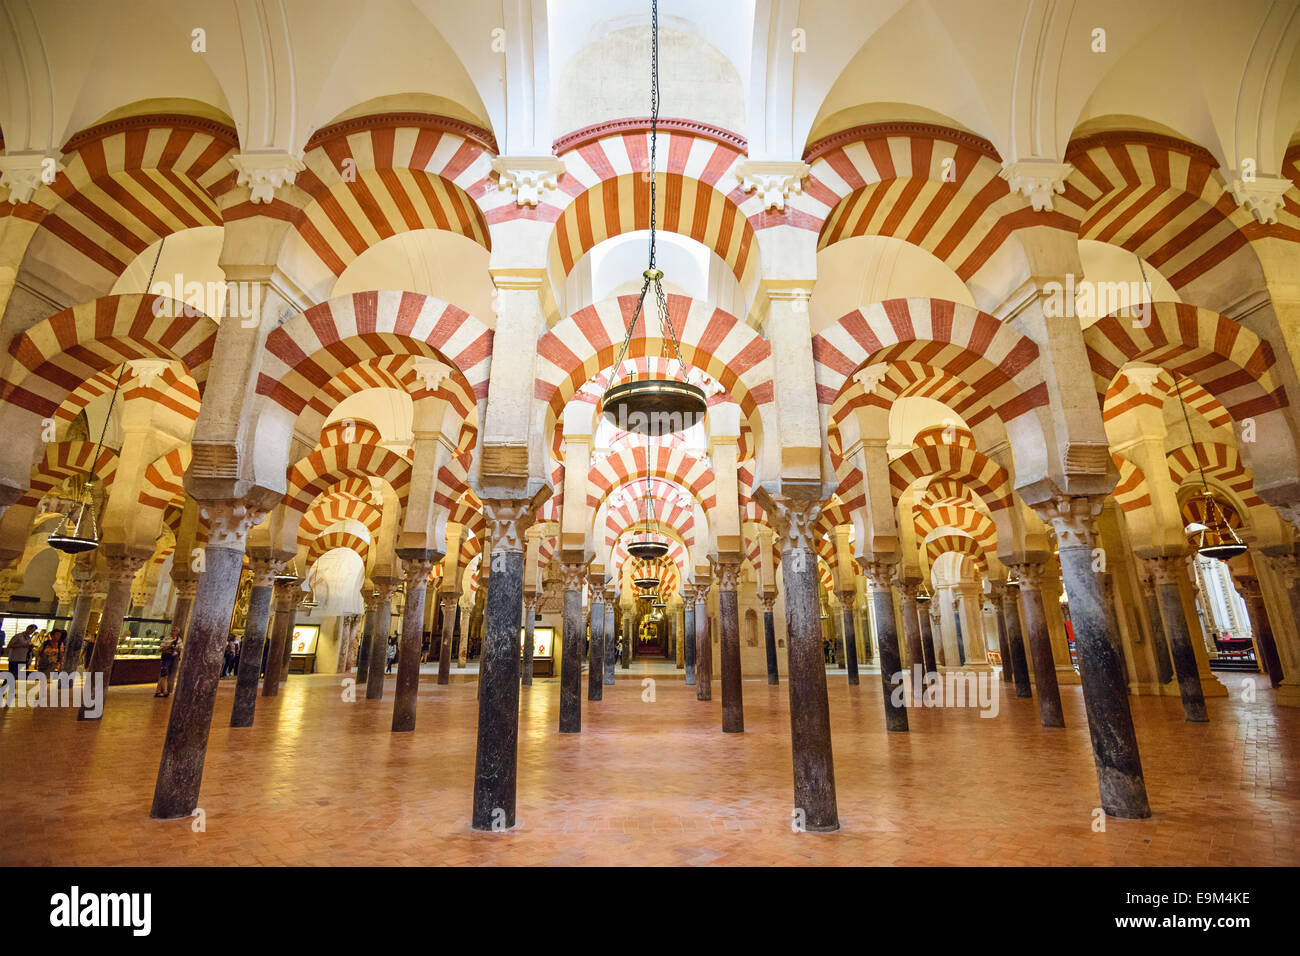 Cordoba, Spain Mosque-Cathedral. - Stock Image